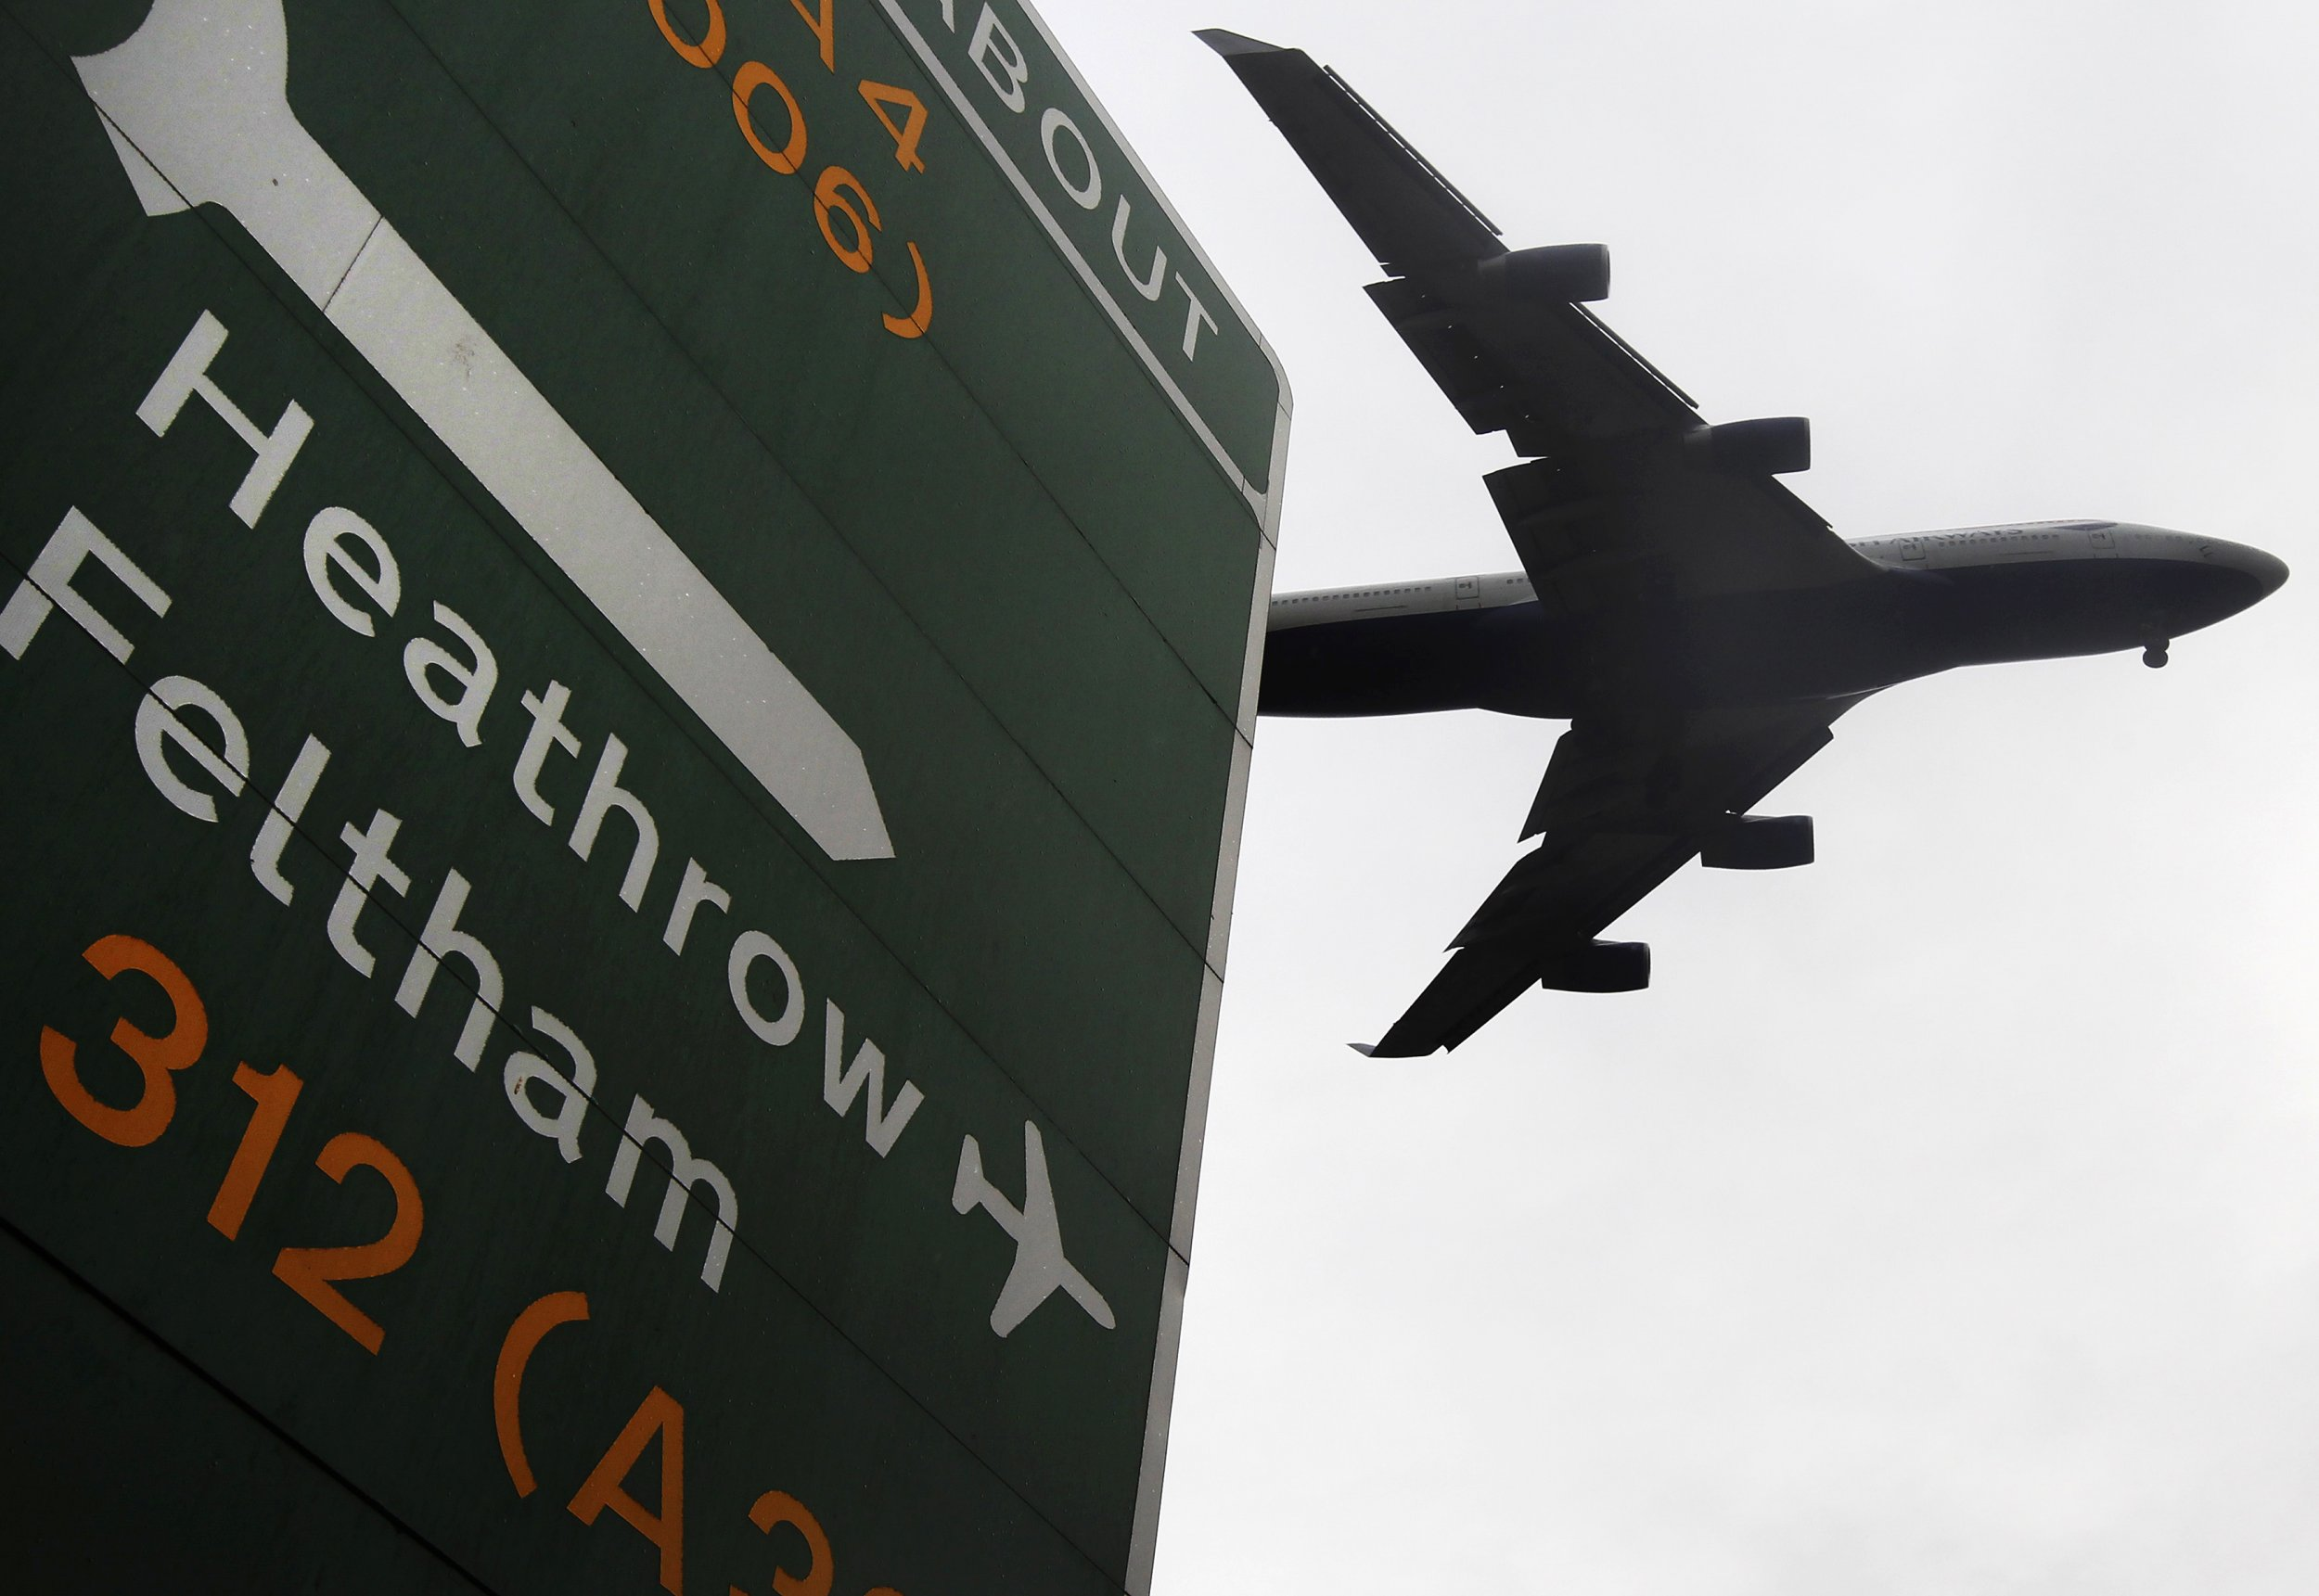 Plane flies above a sign to Heathrow airport